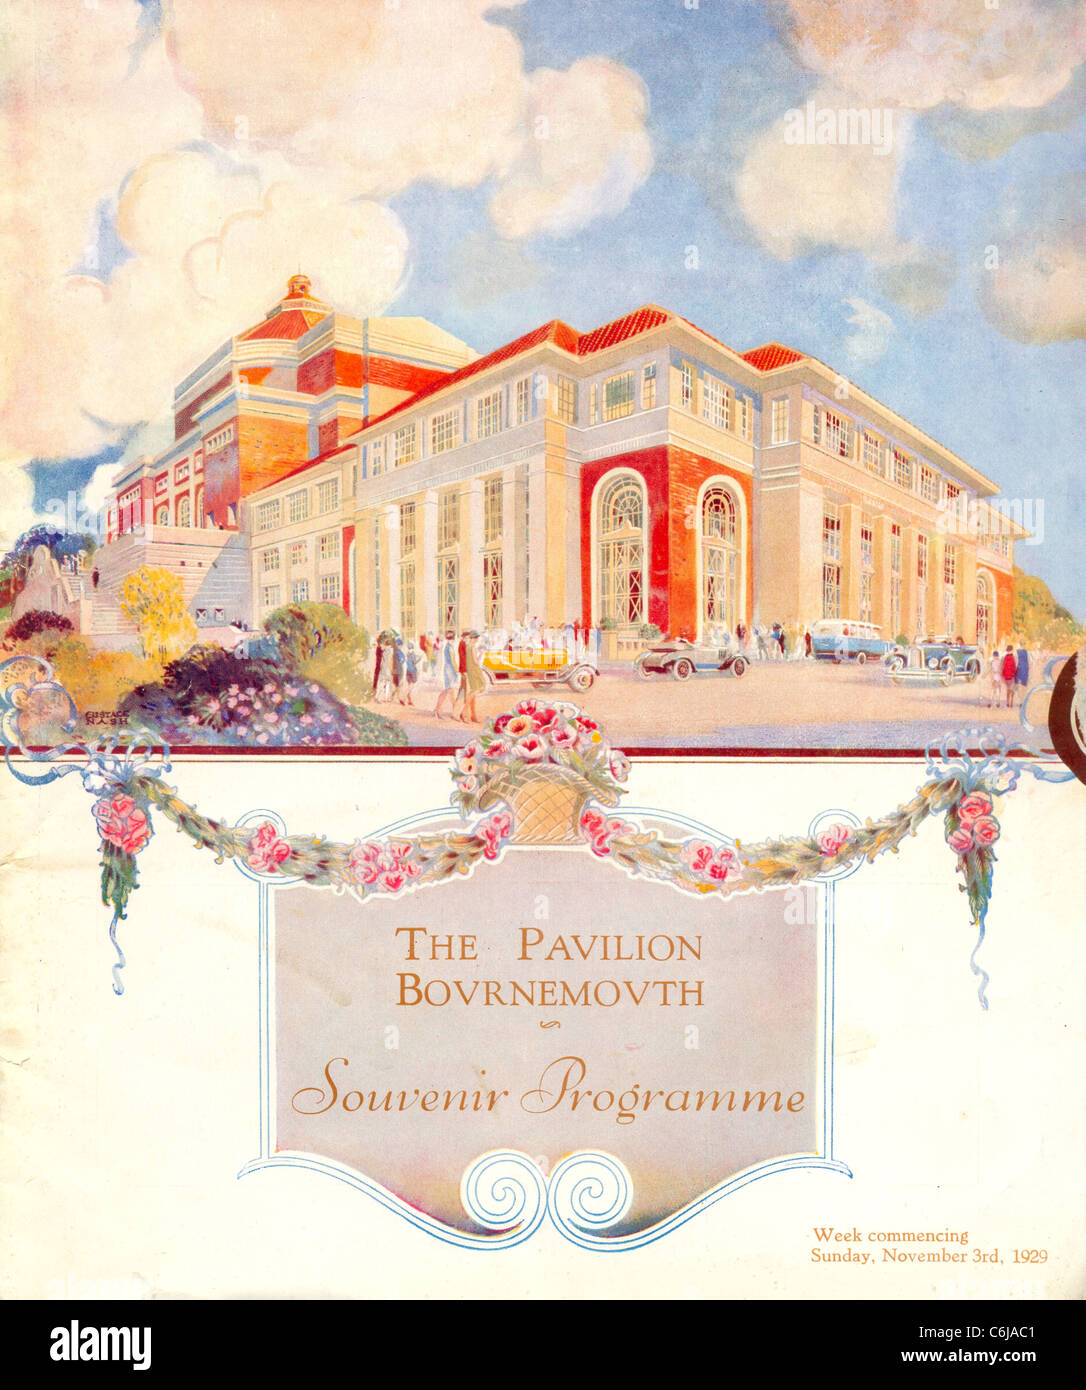 Souvenir programme for The Pavilion, Bournemouth - Stock Image